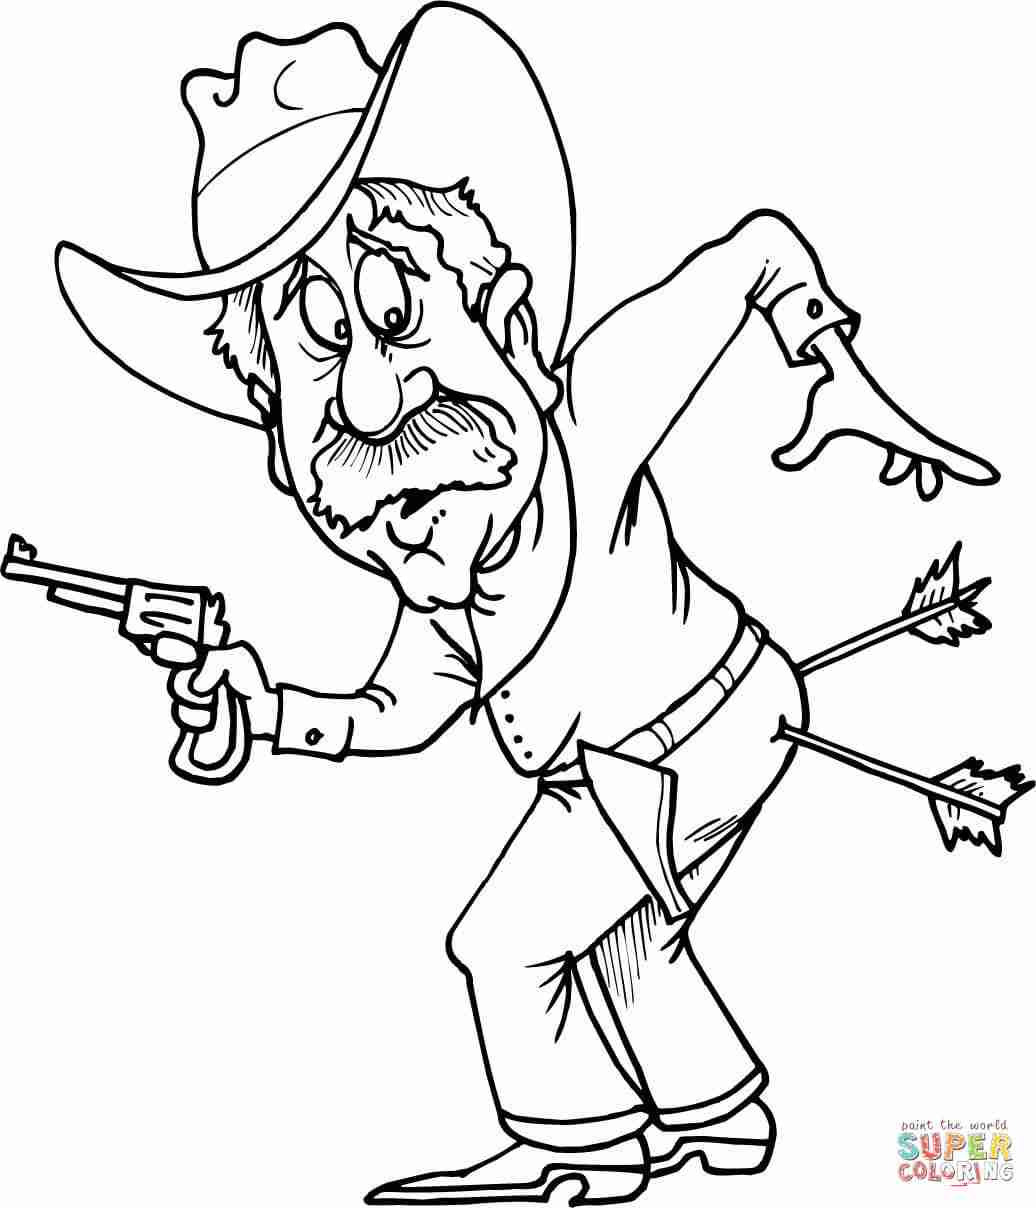 1036x1208 Dallas Cowboys Helmet Coloring Pages Free Lovely Cowboy Page